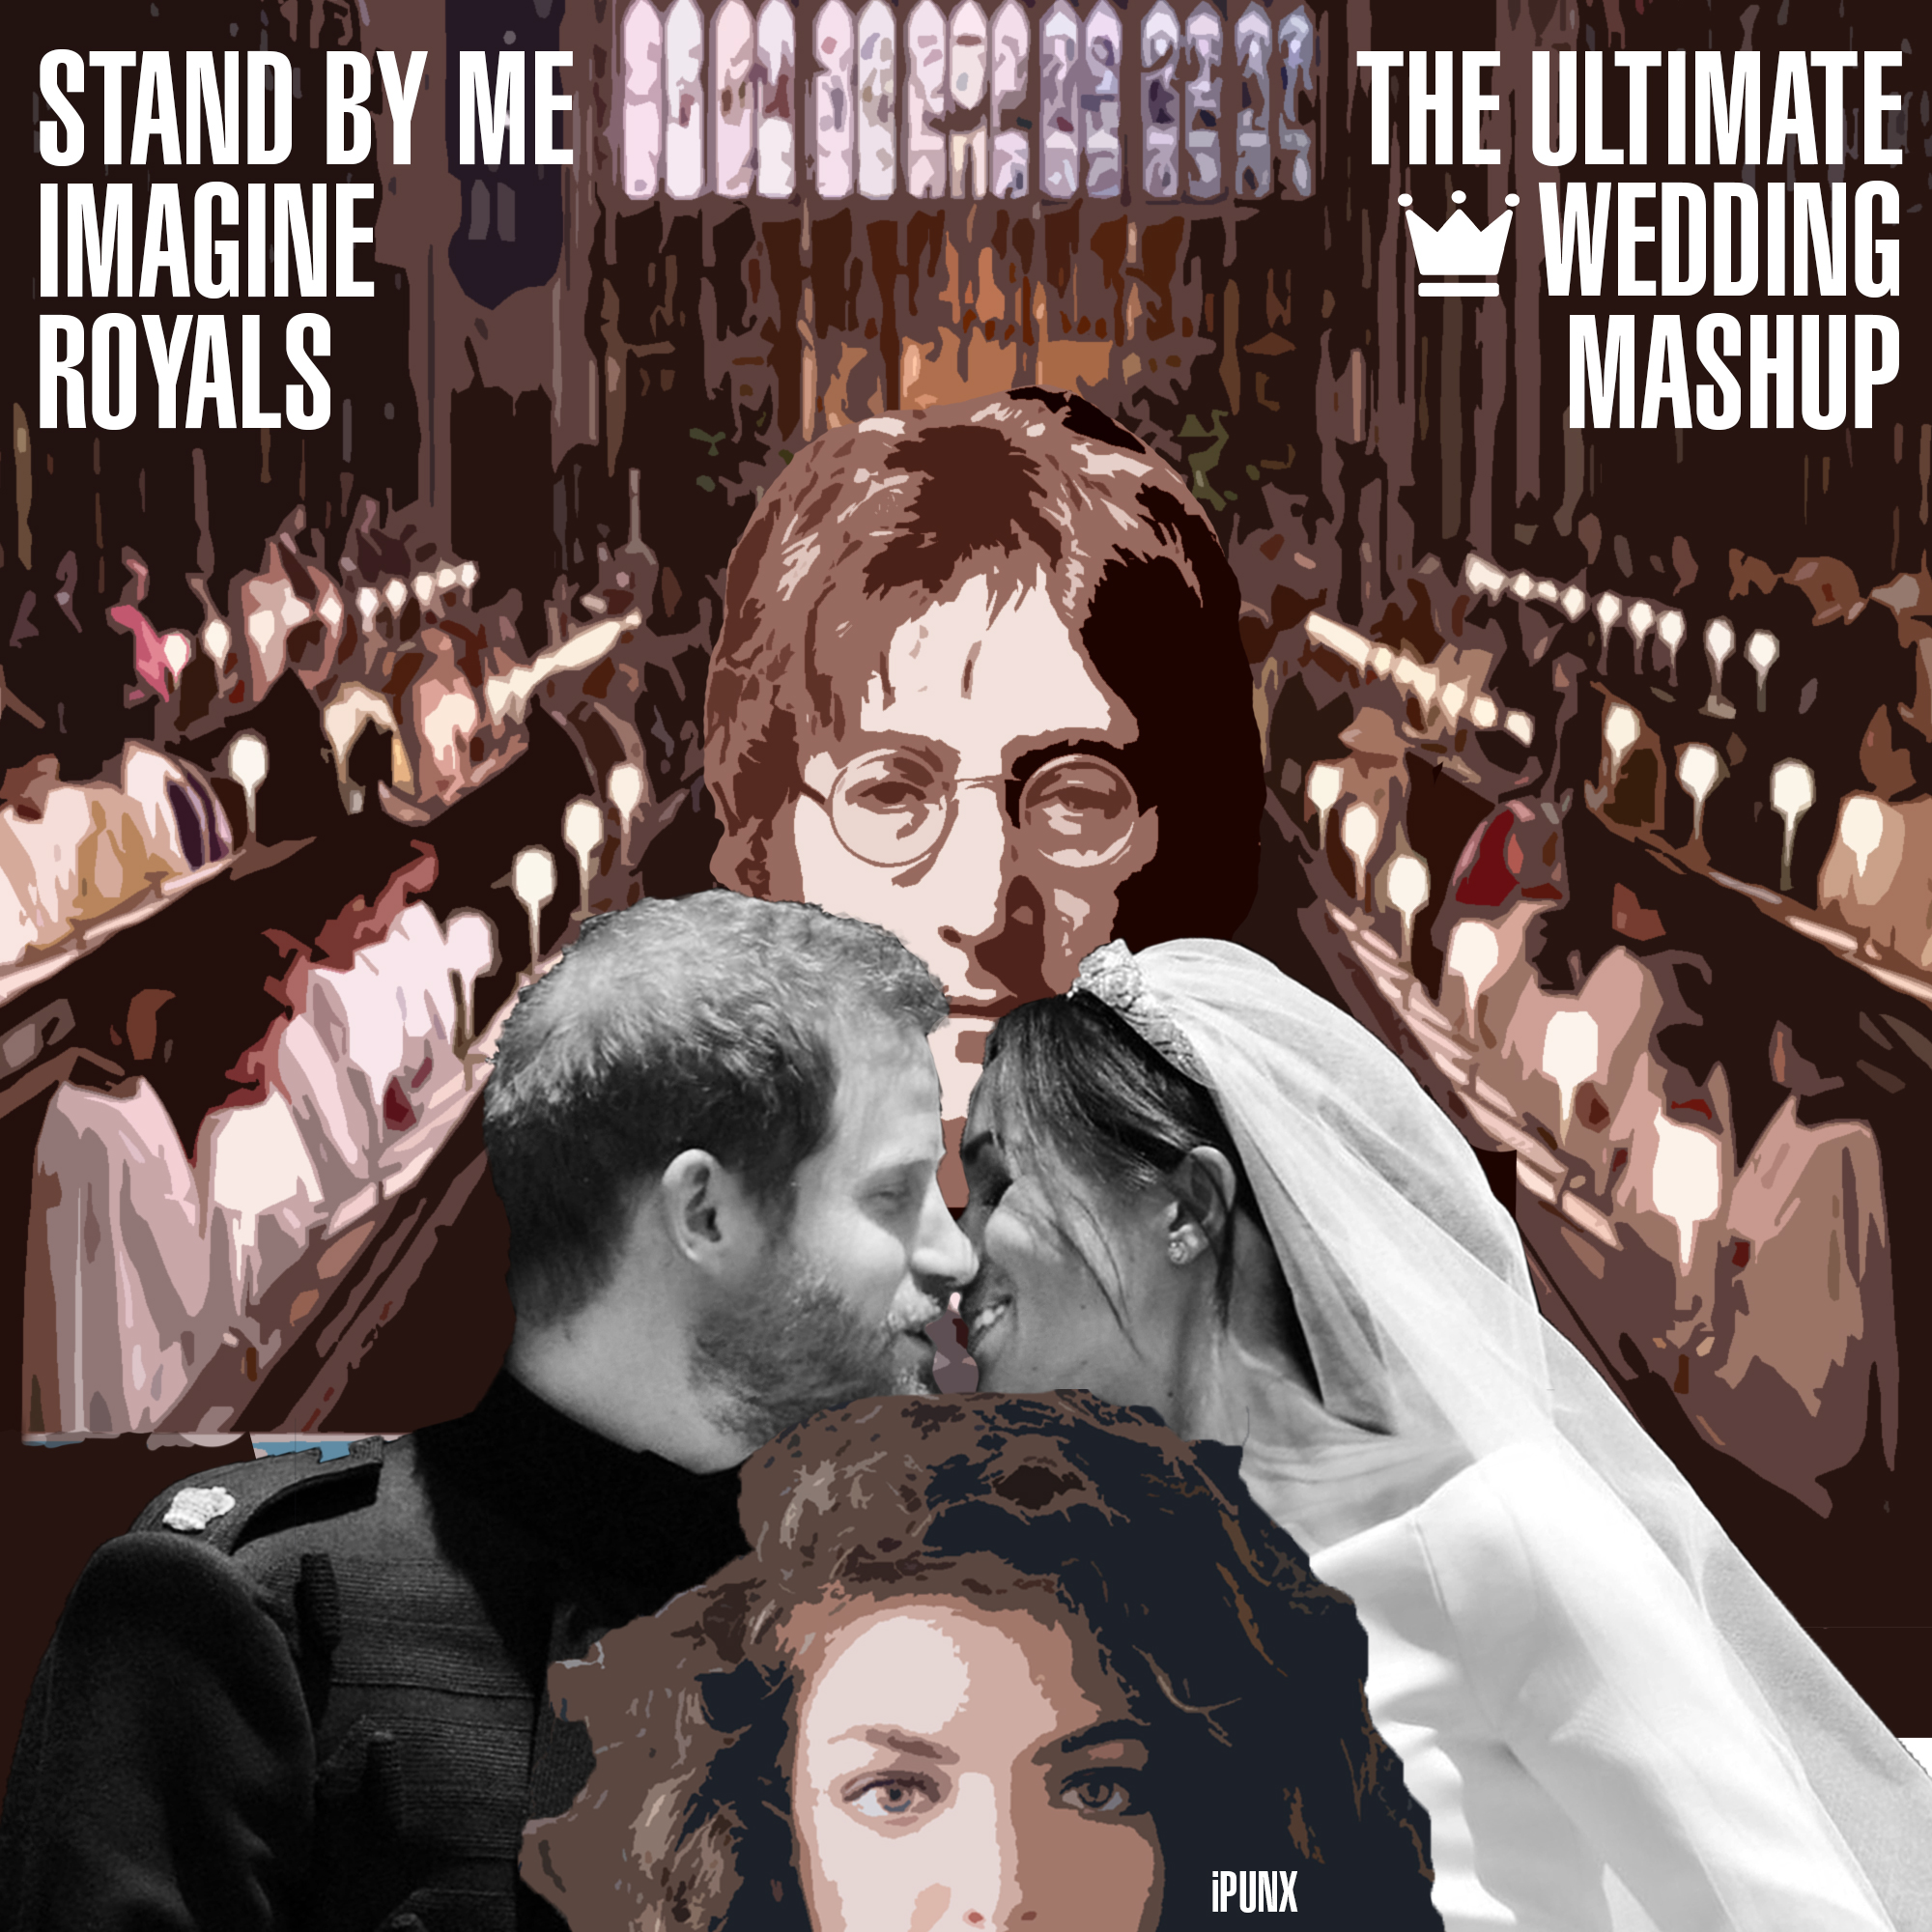 The Ultimate Royal Wedding Mashup (Stand By Me vs Imagine vs Royals)